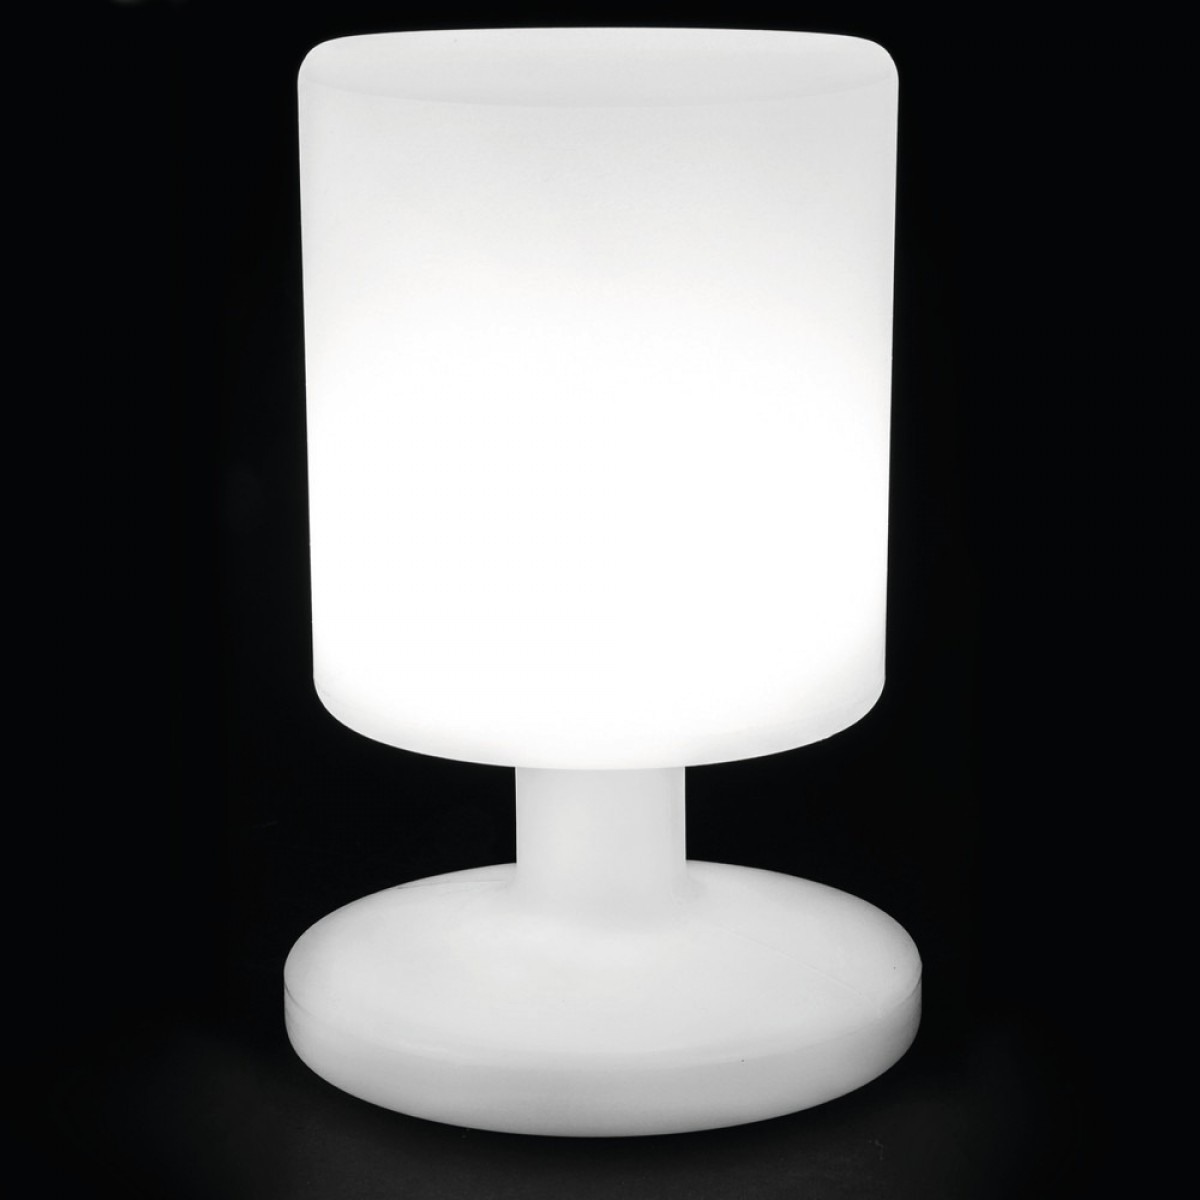 Lampe Led Table Exterieur Lampe De Table Extérieure Led Gurav Blanc